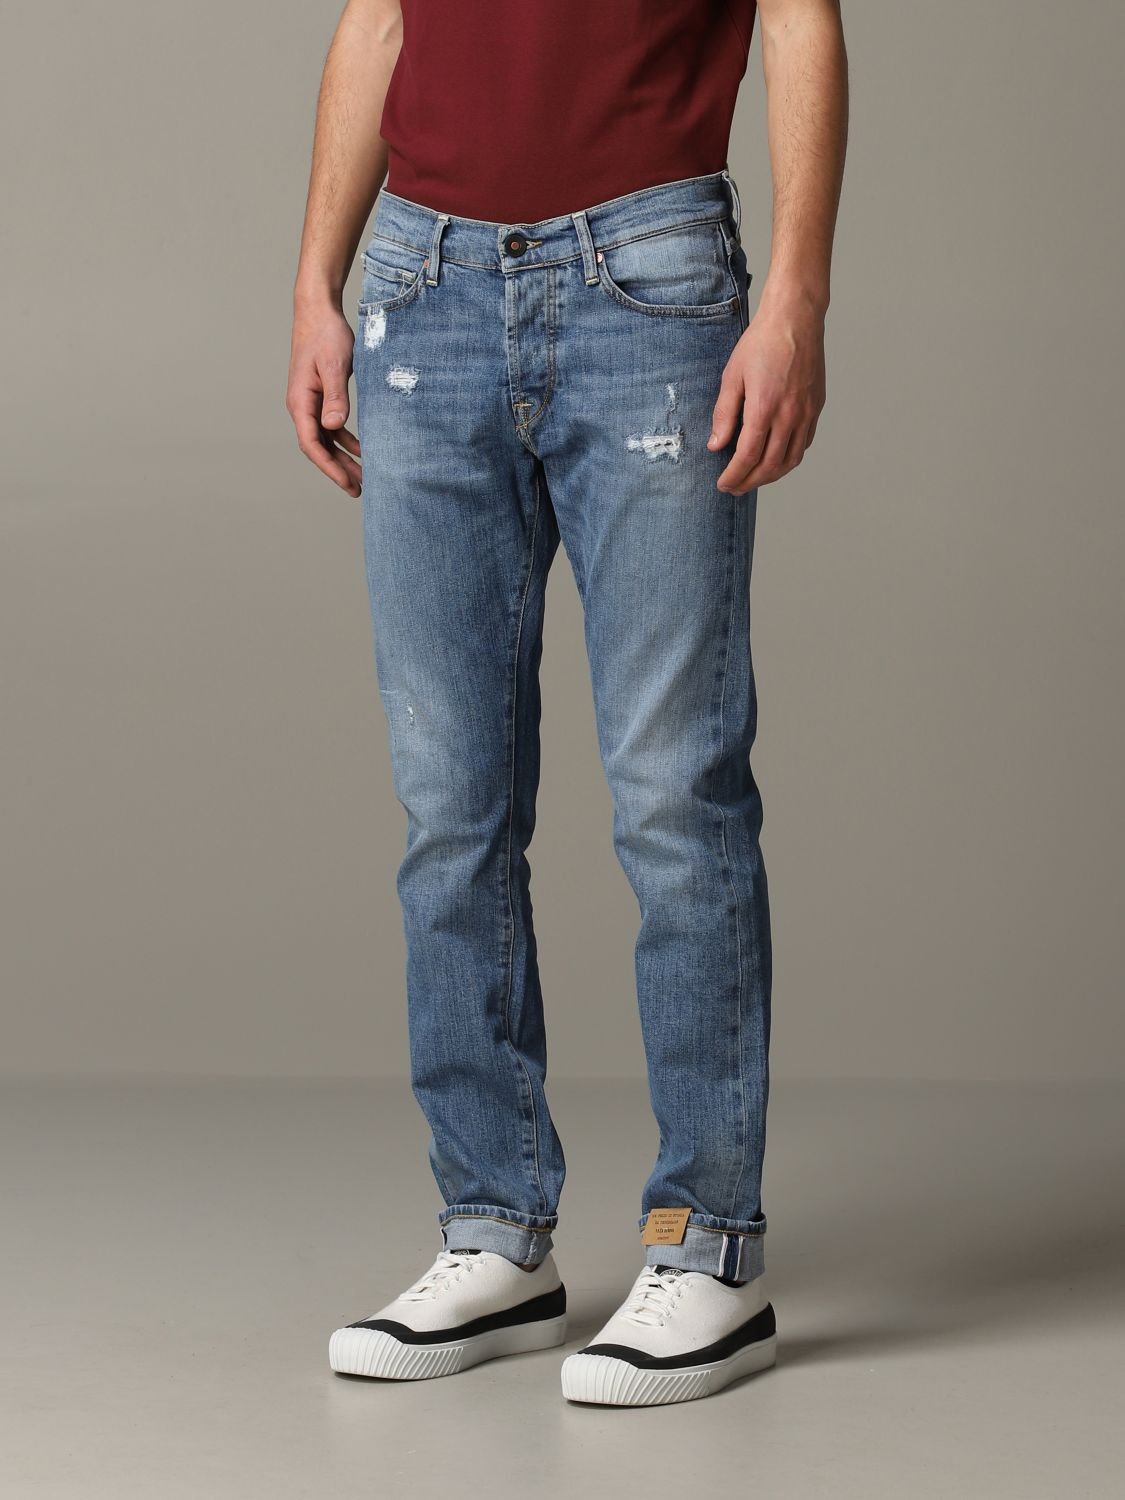 Jeans Tela Geneva in denim used stretch blue 4